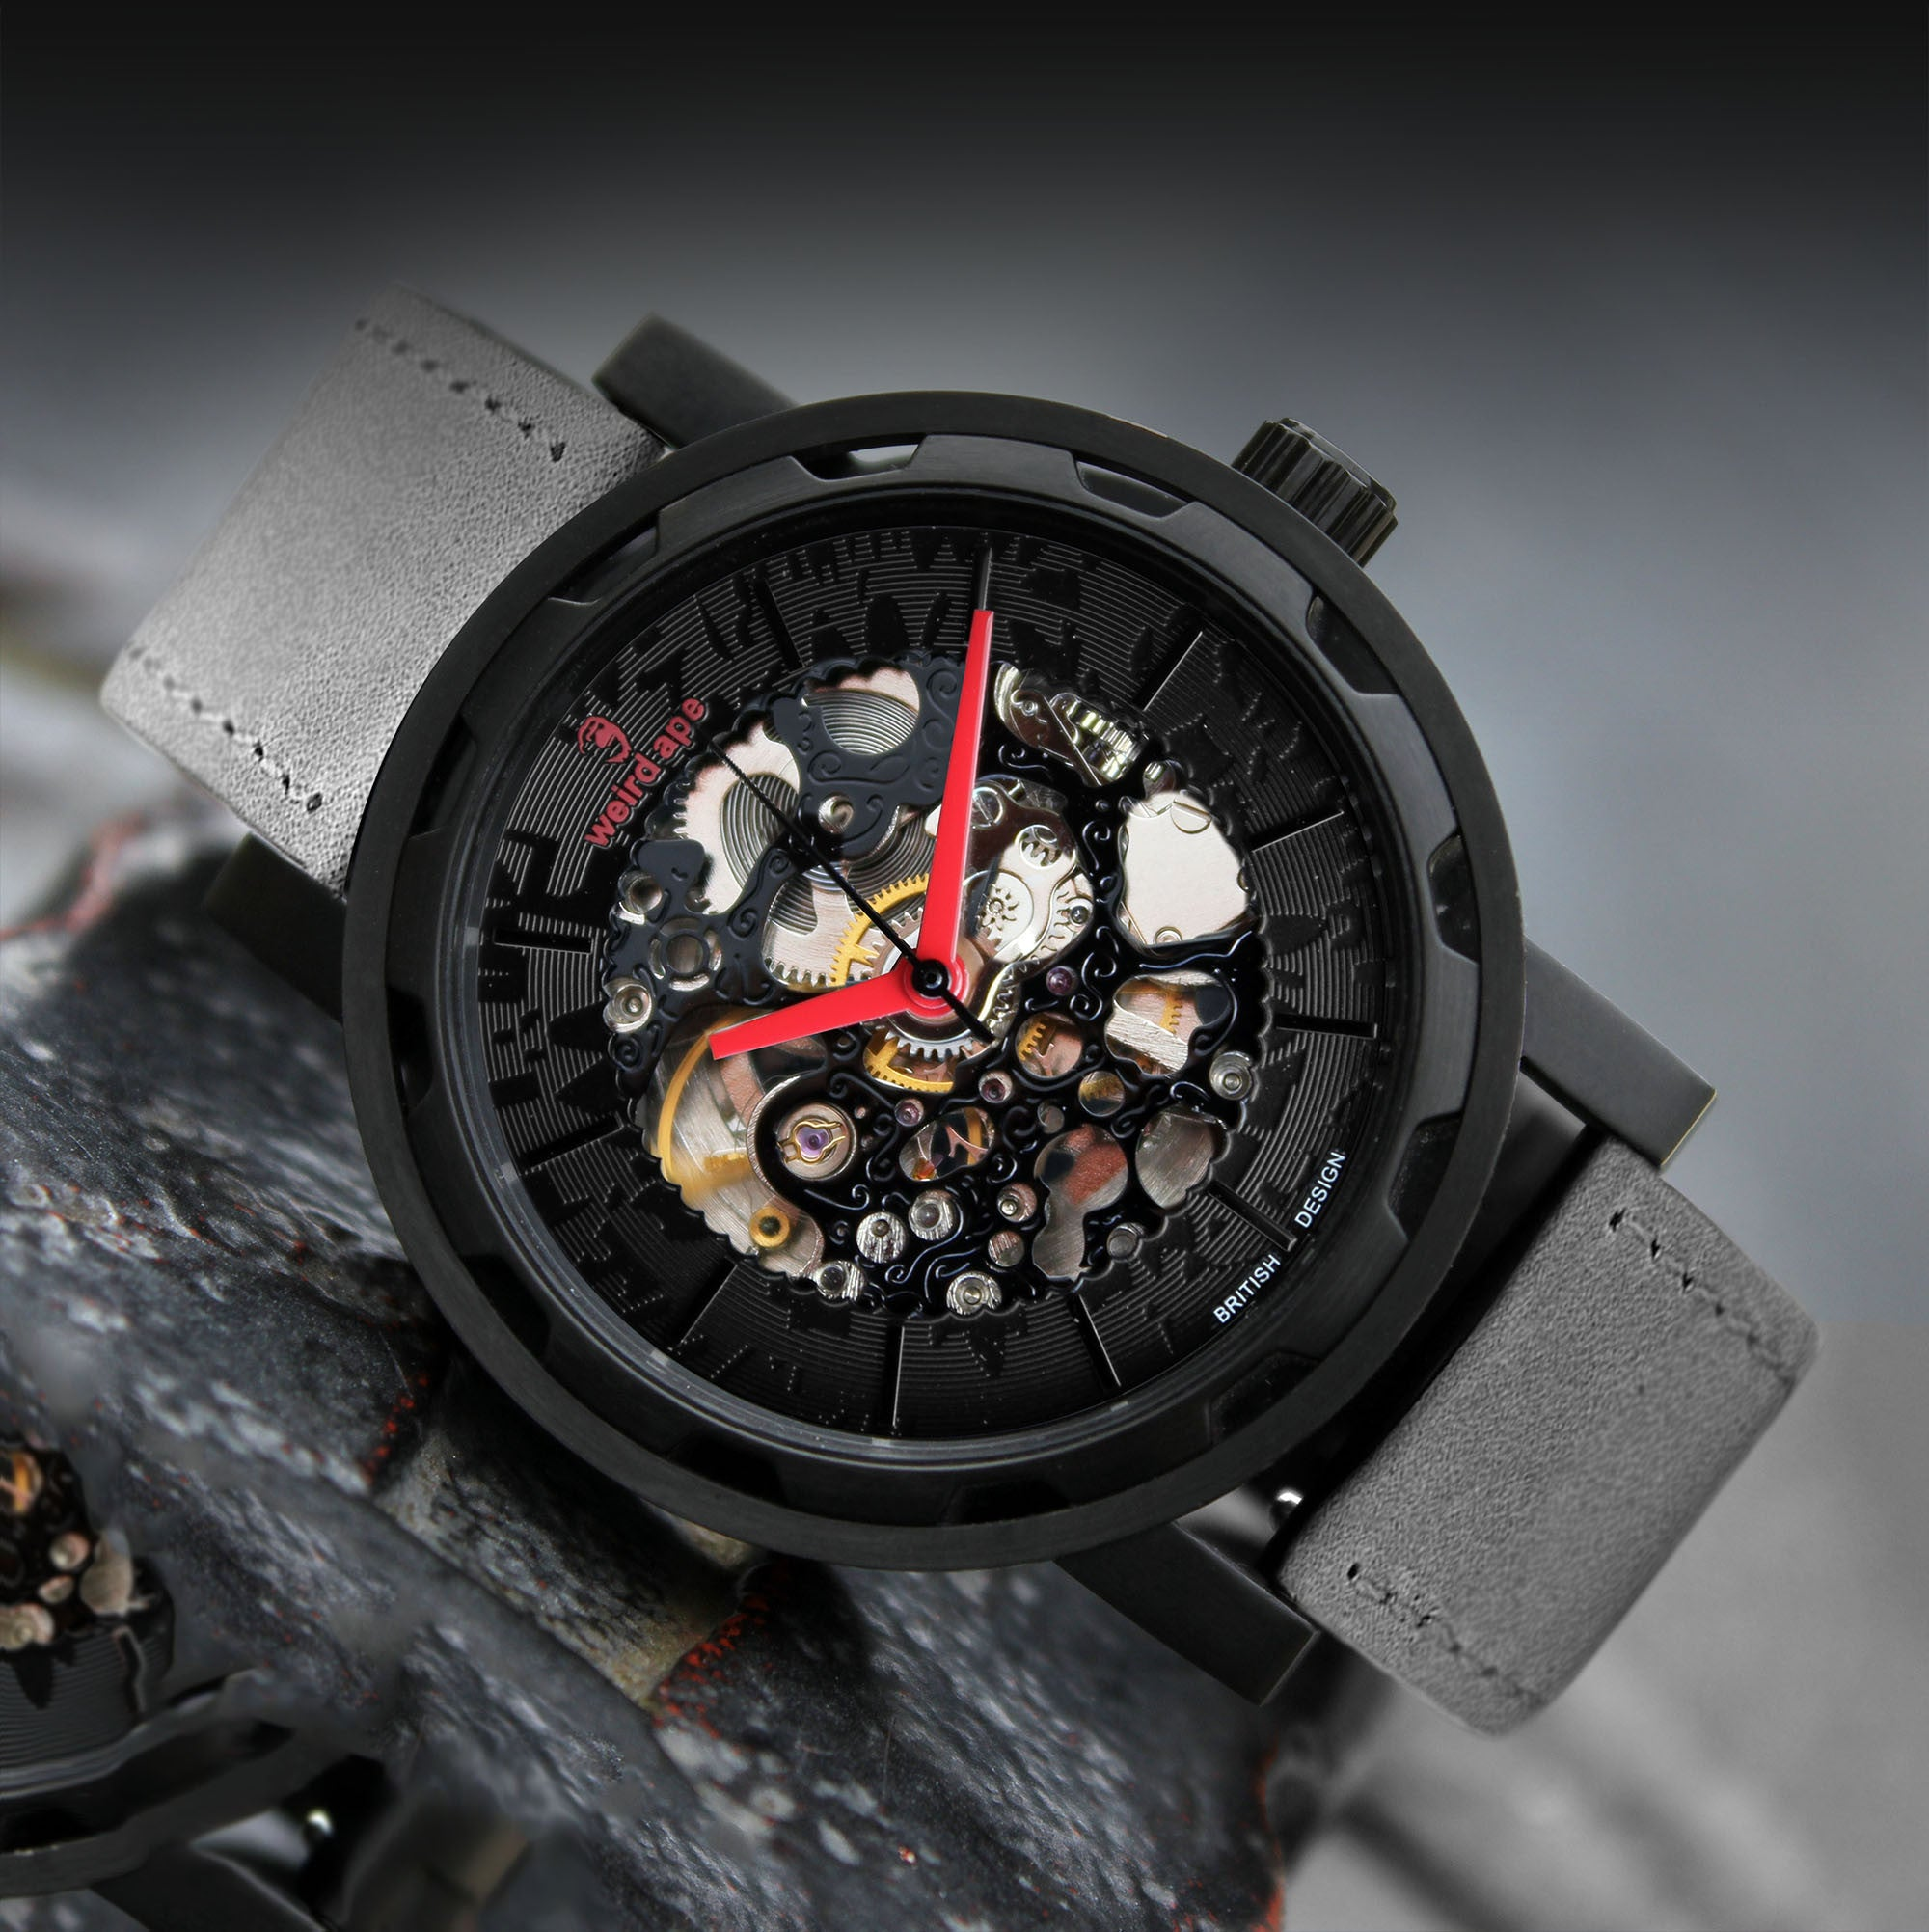 A picture of a black mechanical watch with red hands and a grey suede strap.